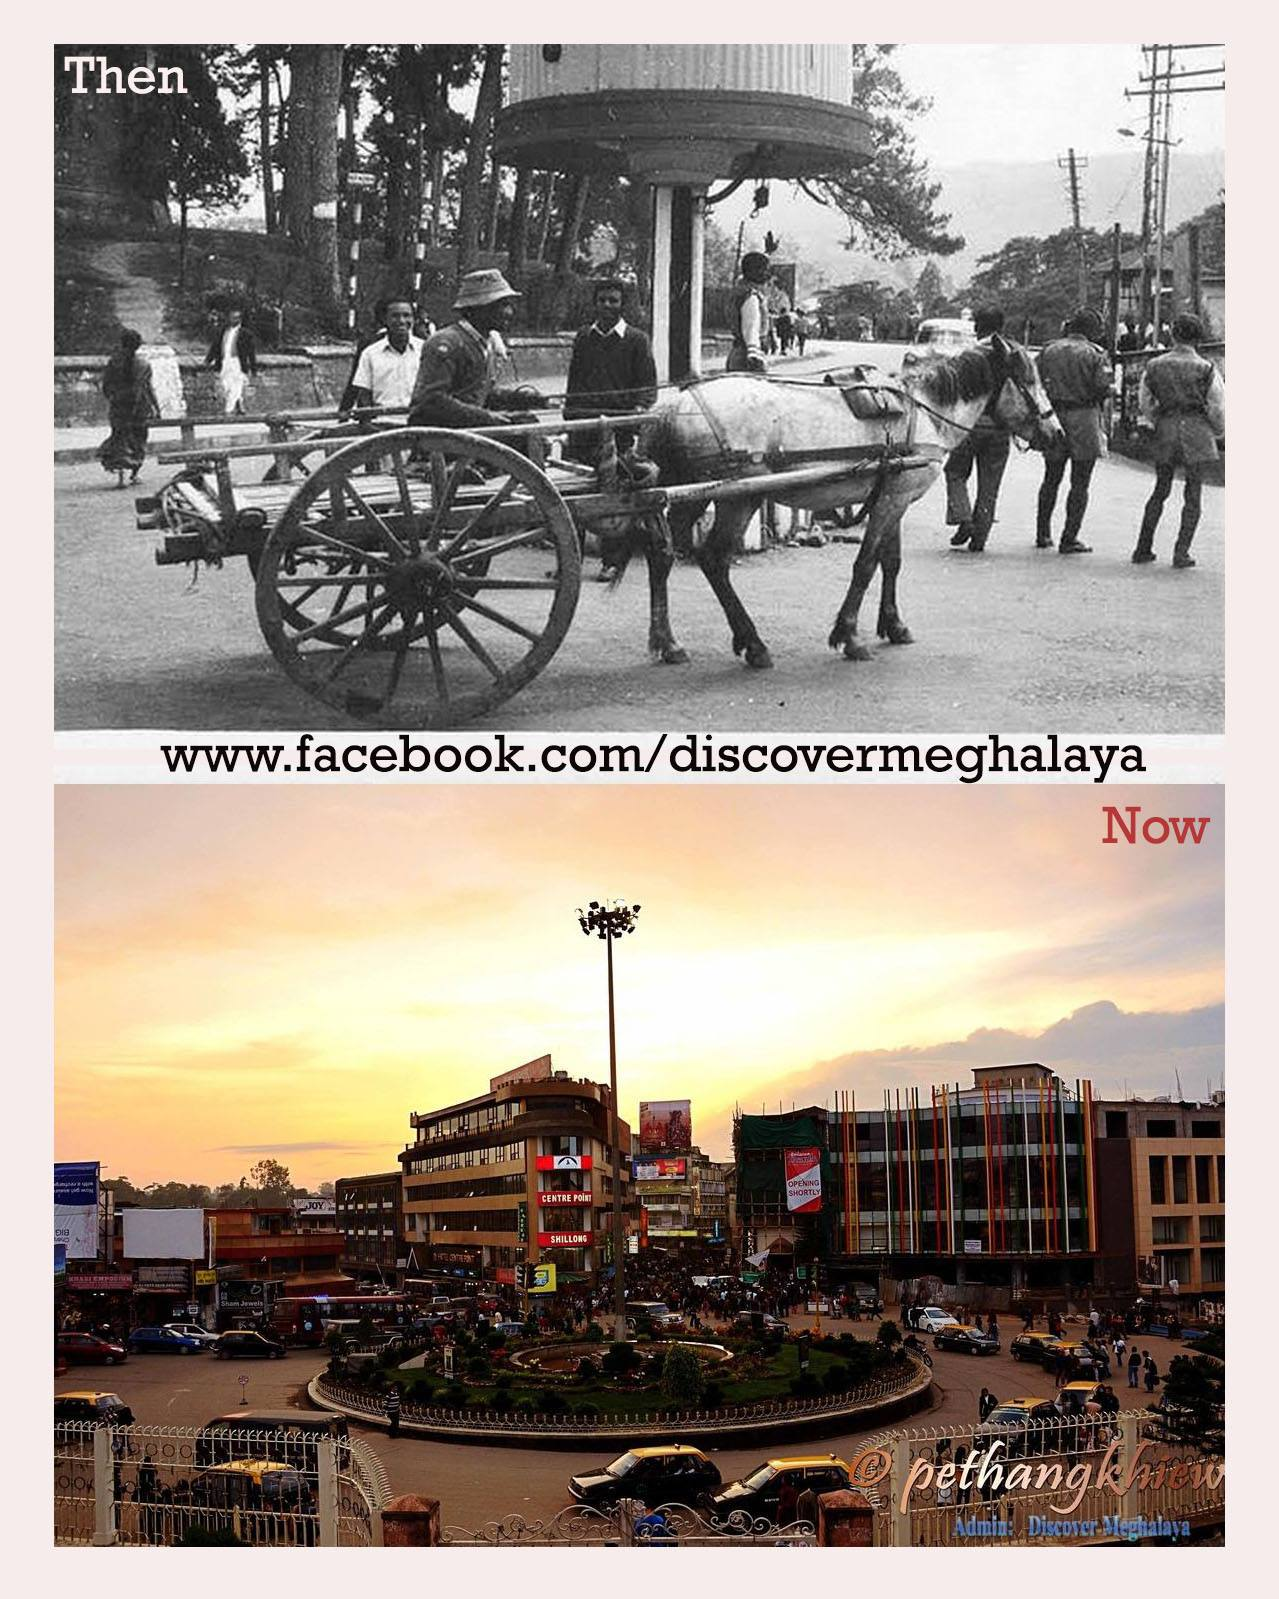 Police Bazar then and now. Photo: Discover Meghalaya